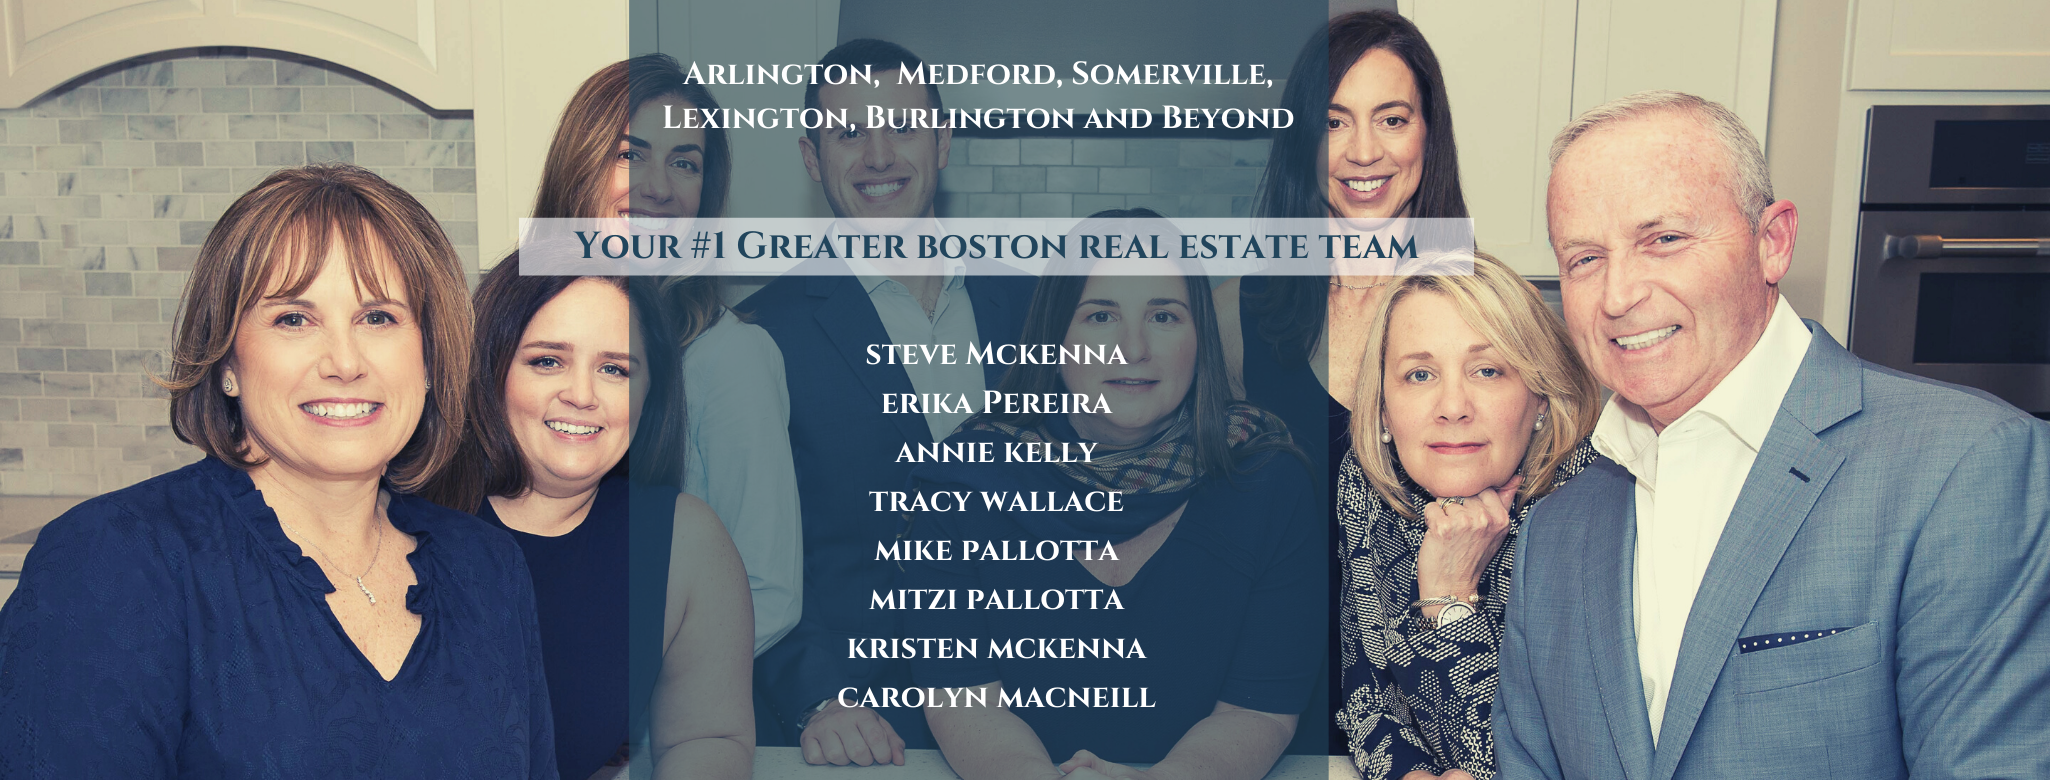 Your #1 Greater Boston Real Estate Team